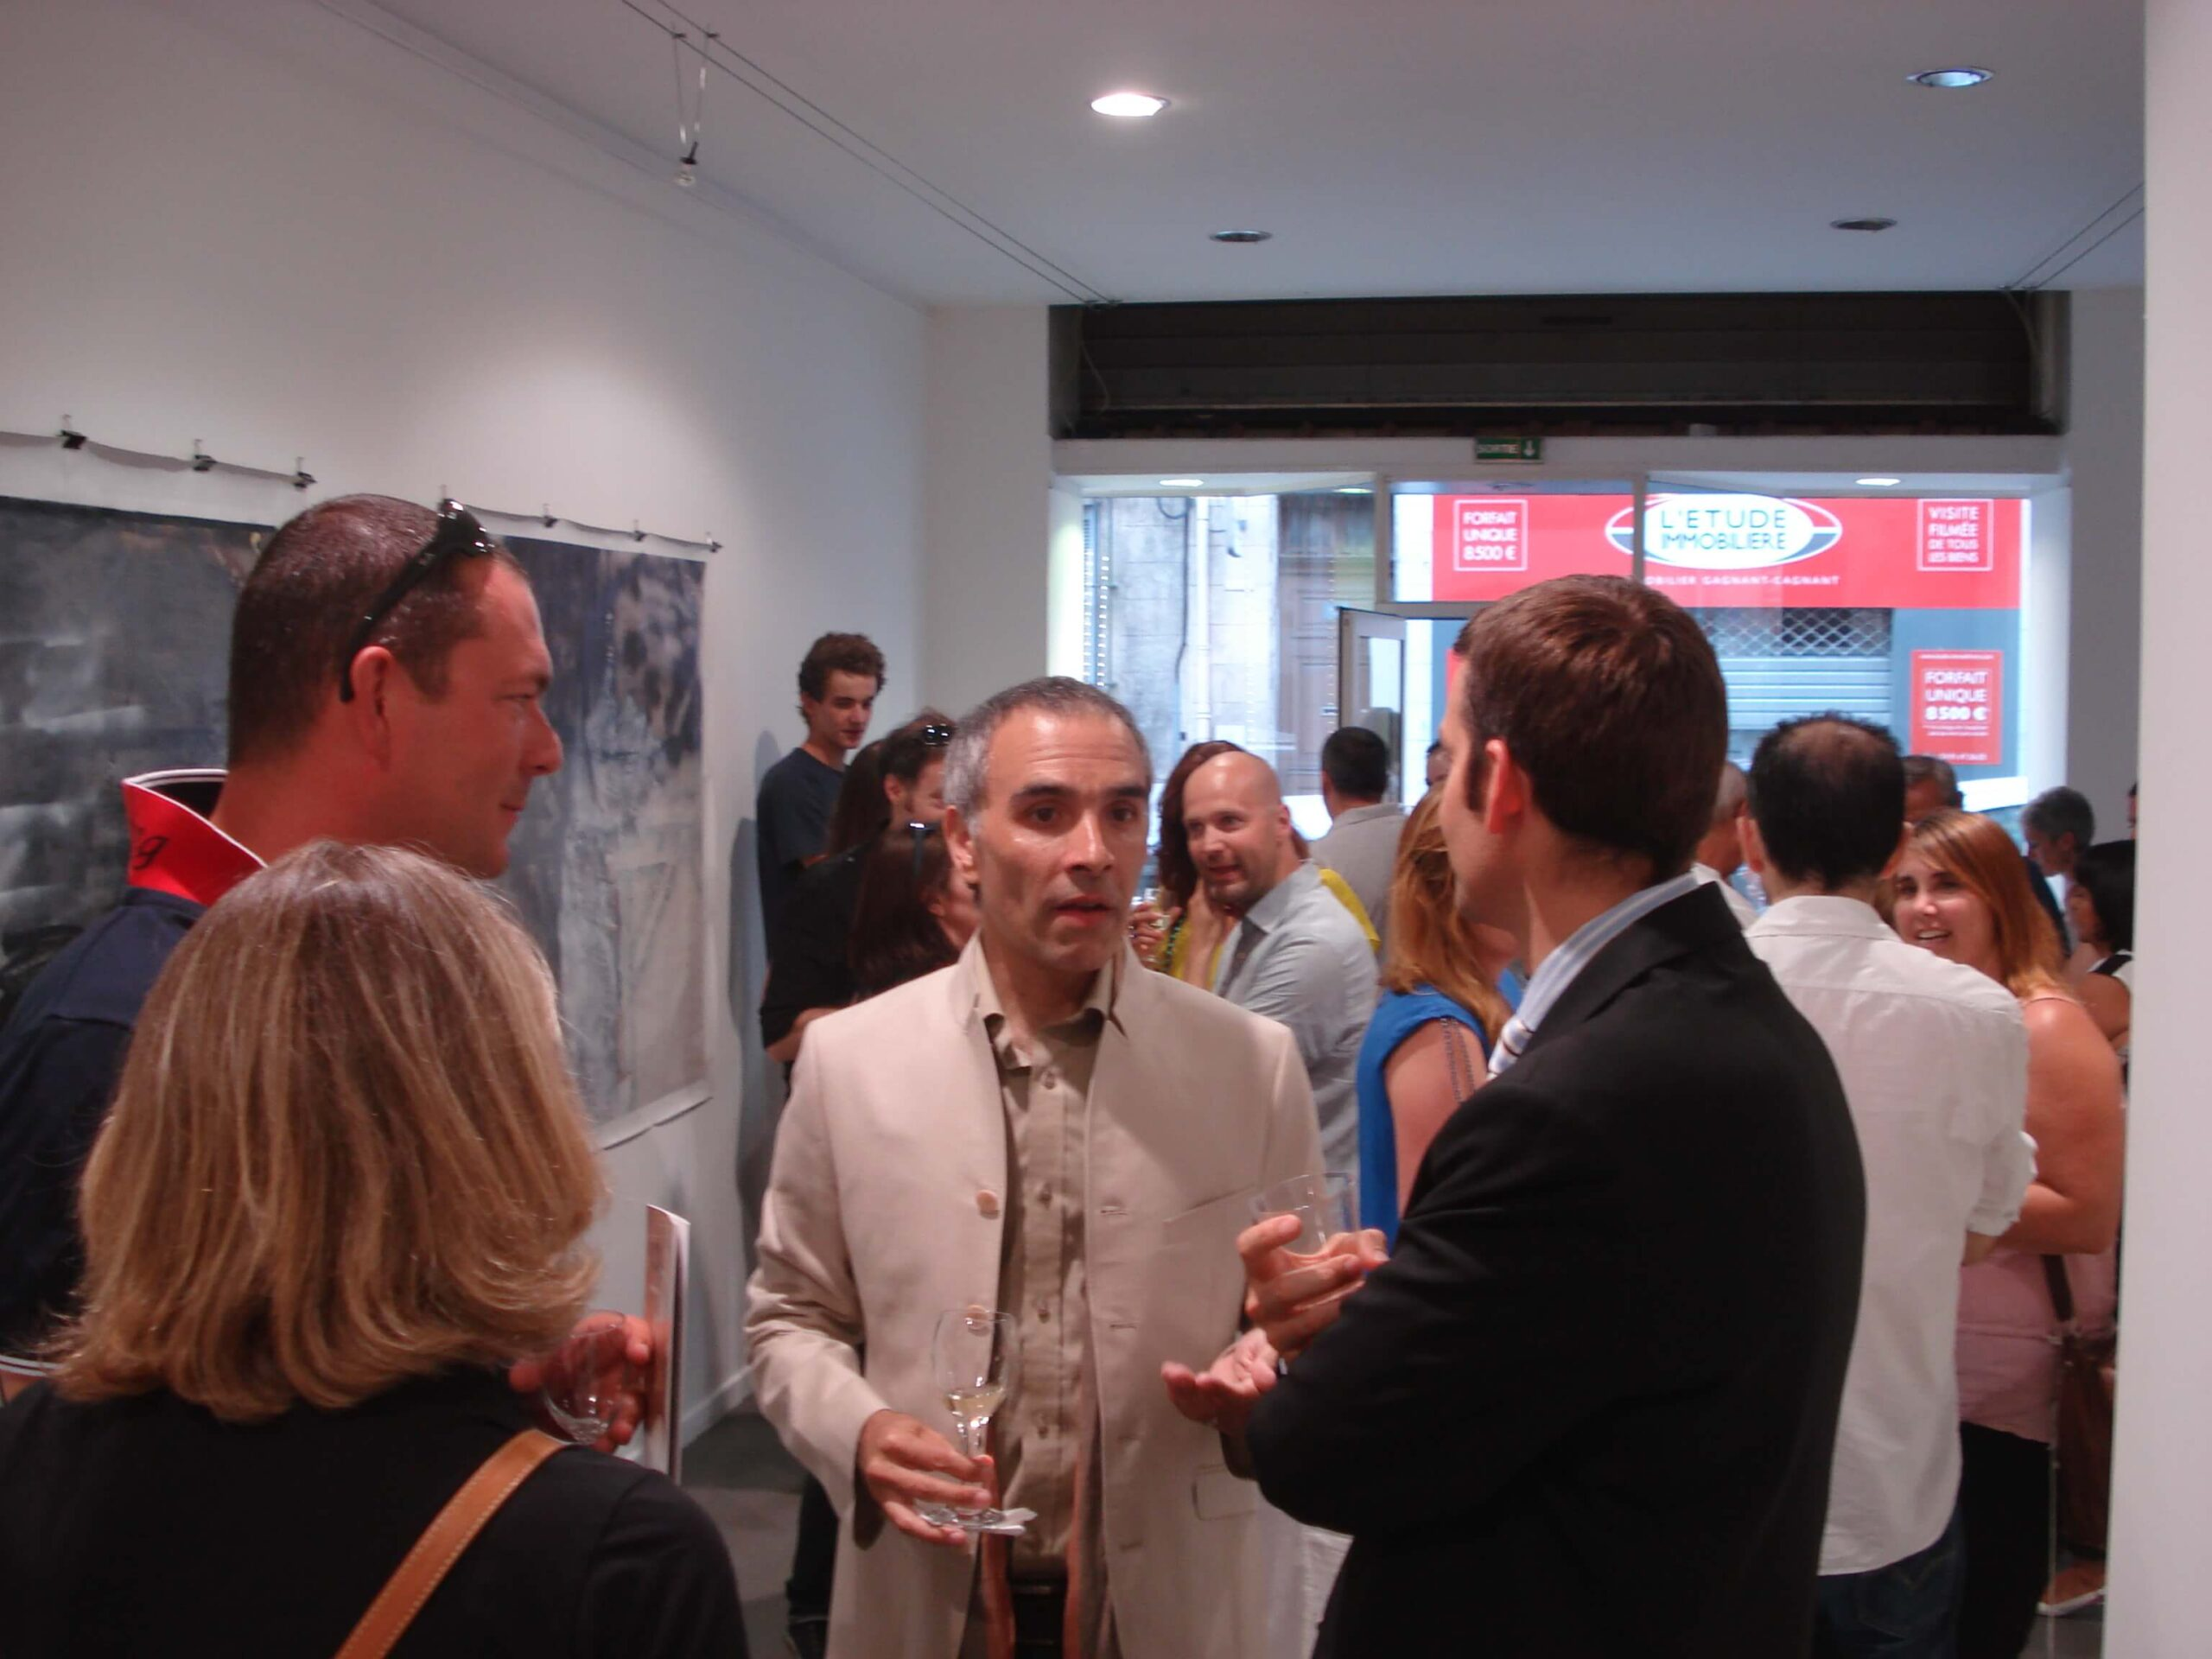 opening at the Paradis gallery